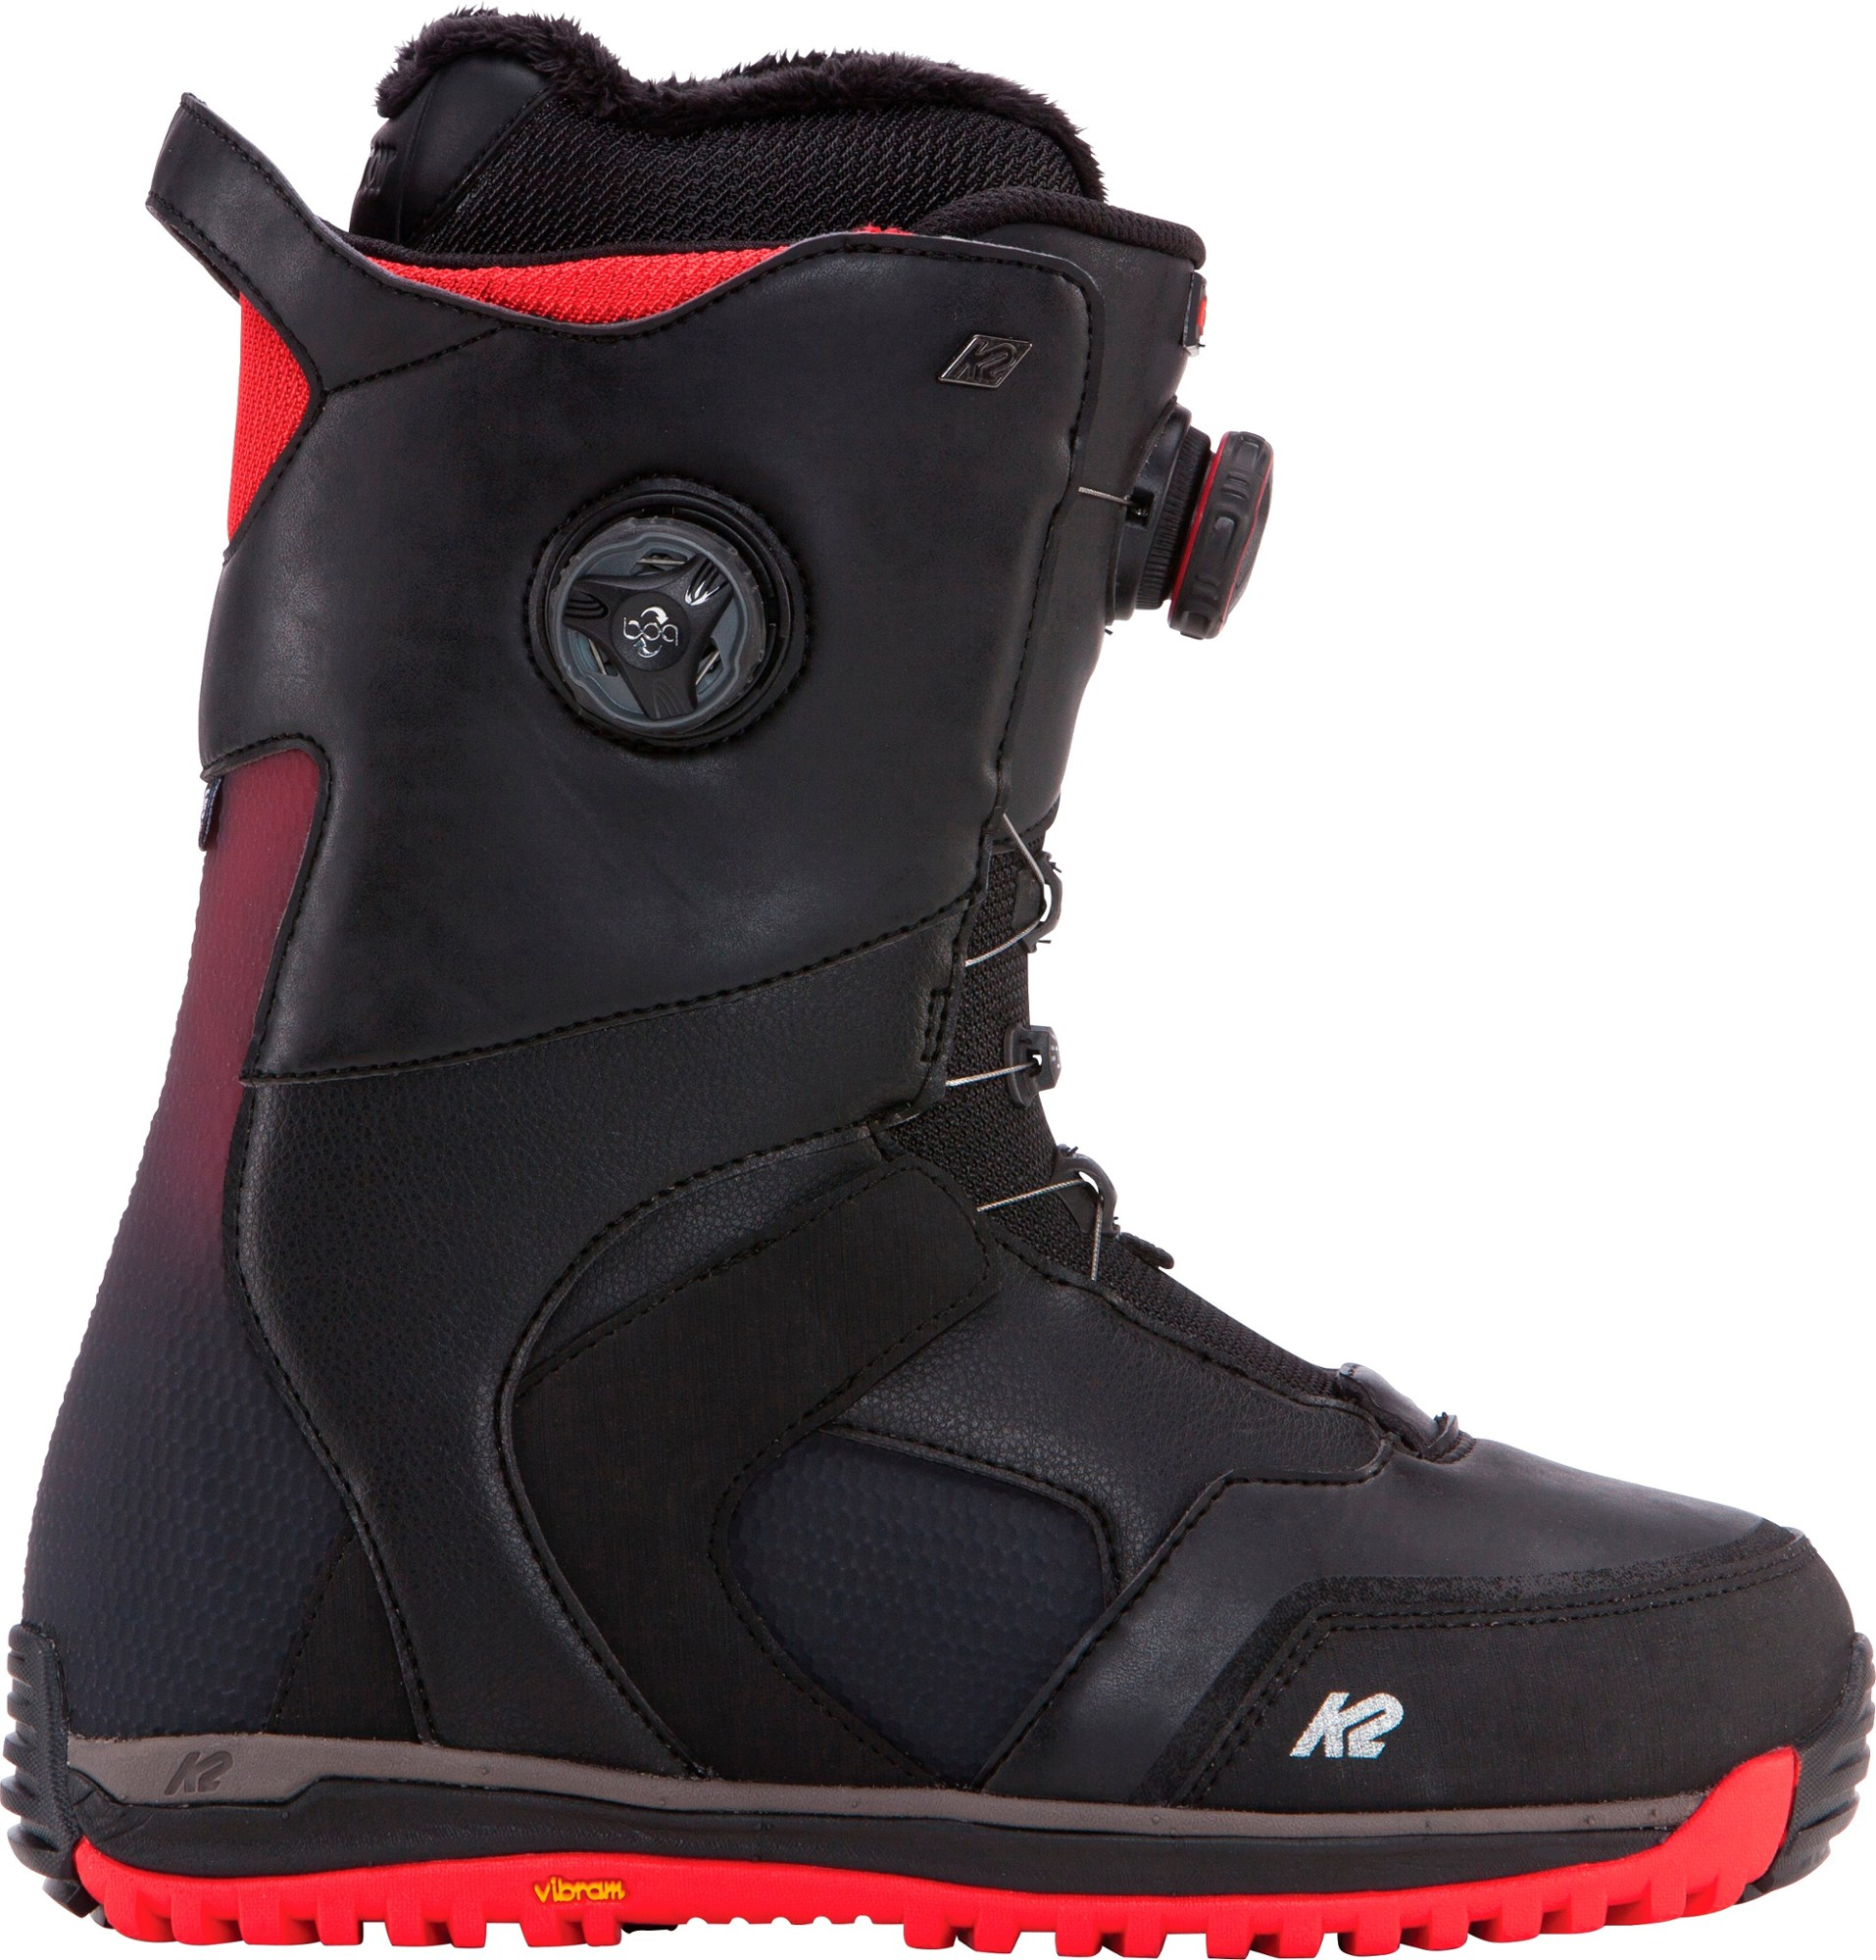 K2 Thraxis Snowboard Boots - Men's - 2018/2019